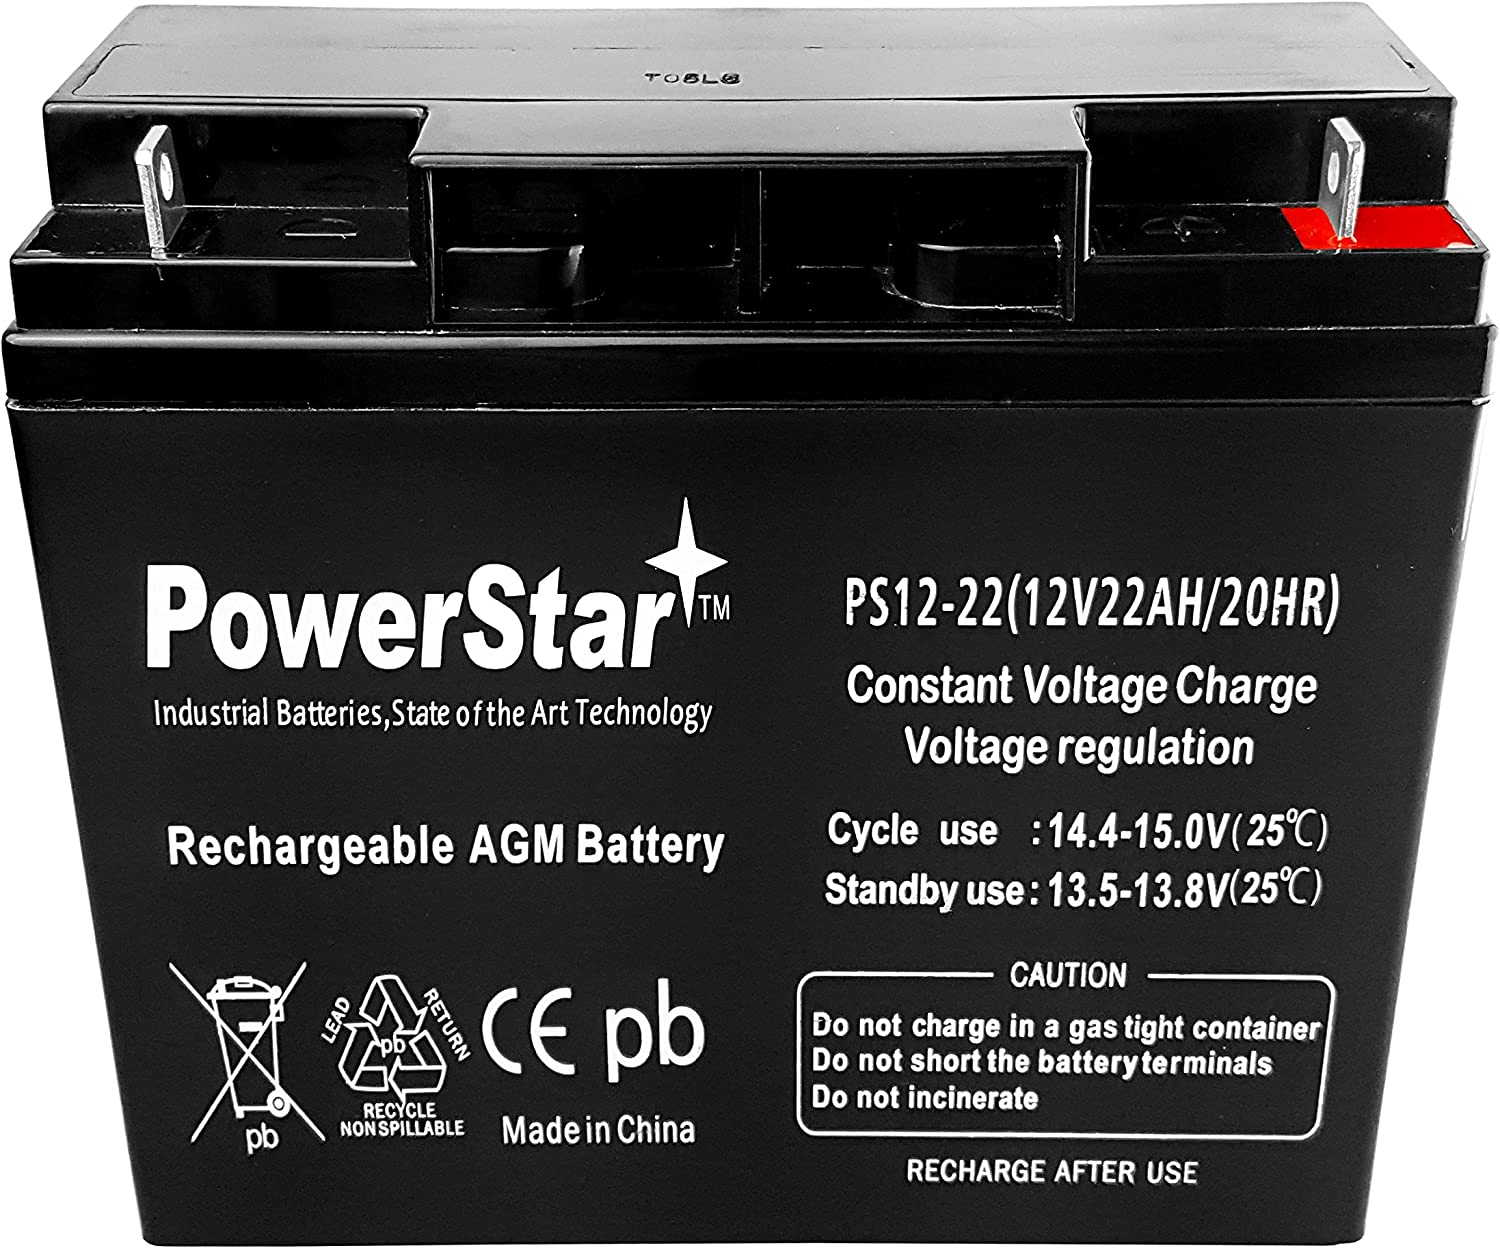 12V 22AH 6FM22 6-FM-22 Sealed Lead Acid Rechargeable Deep Cycle Battery